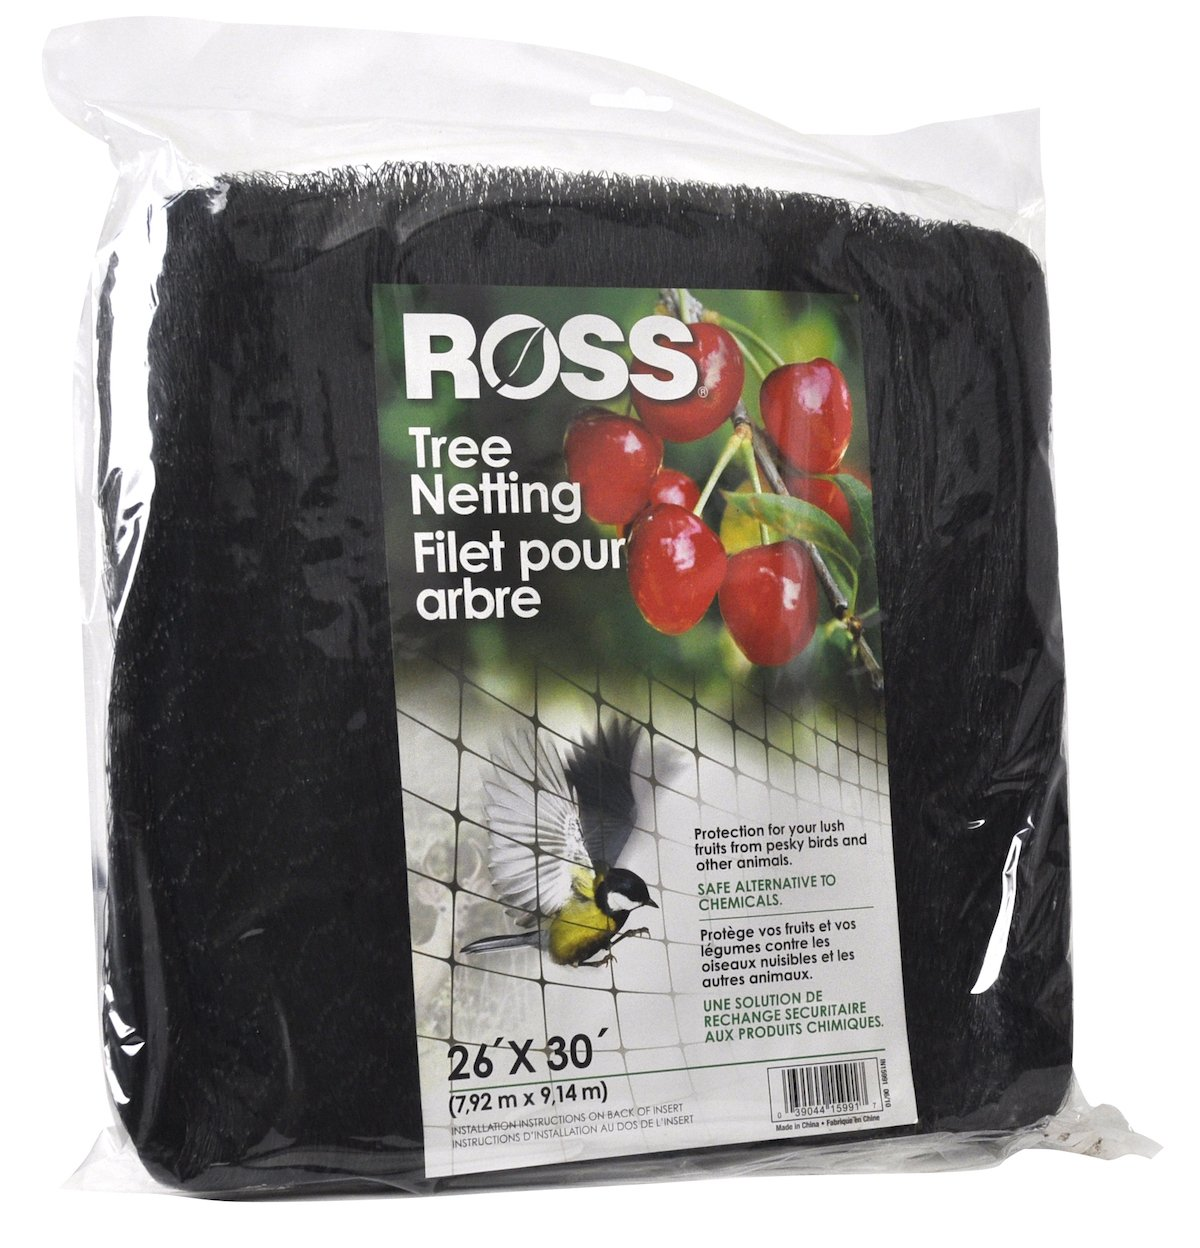 Ross Tree Netting (Use as Bird Netting to Protect Trees from Birds and Other Small Animals) UV-protected Black Plastic Mesh, 26 feet x 30 feet